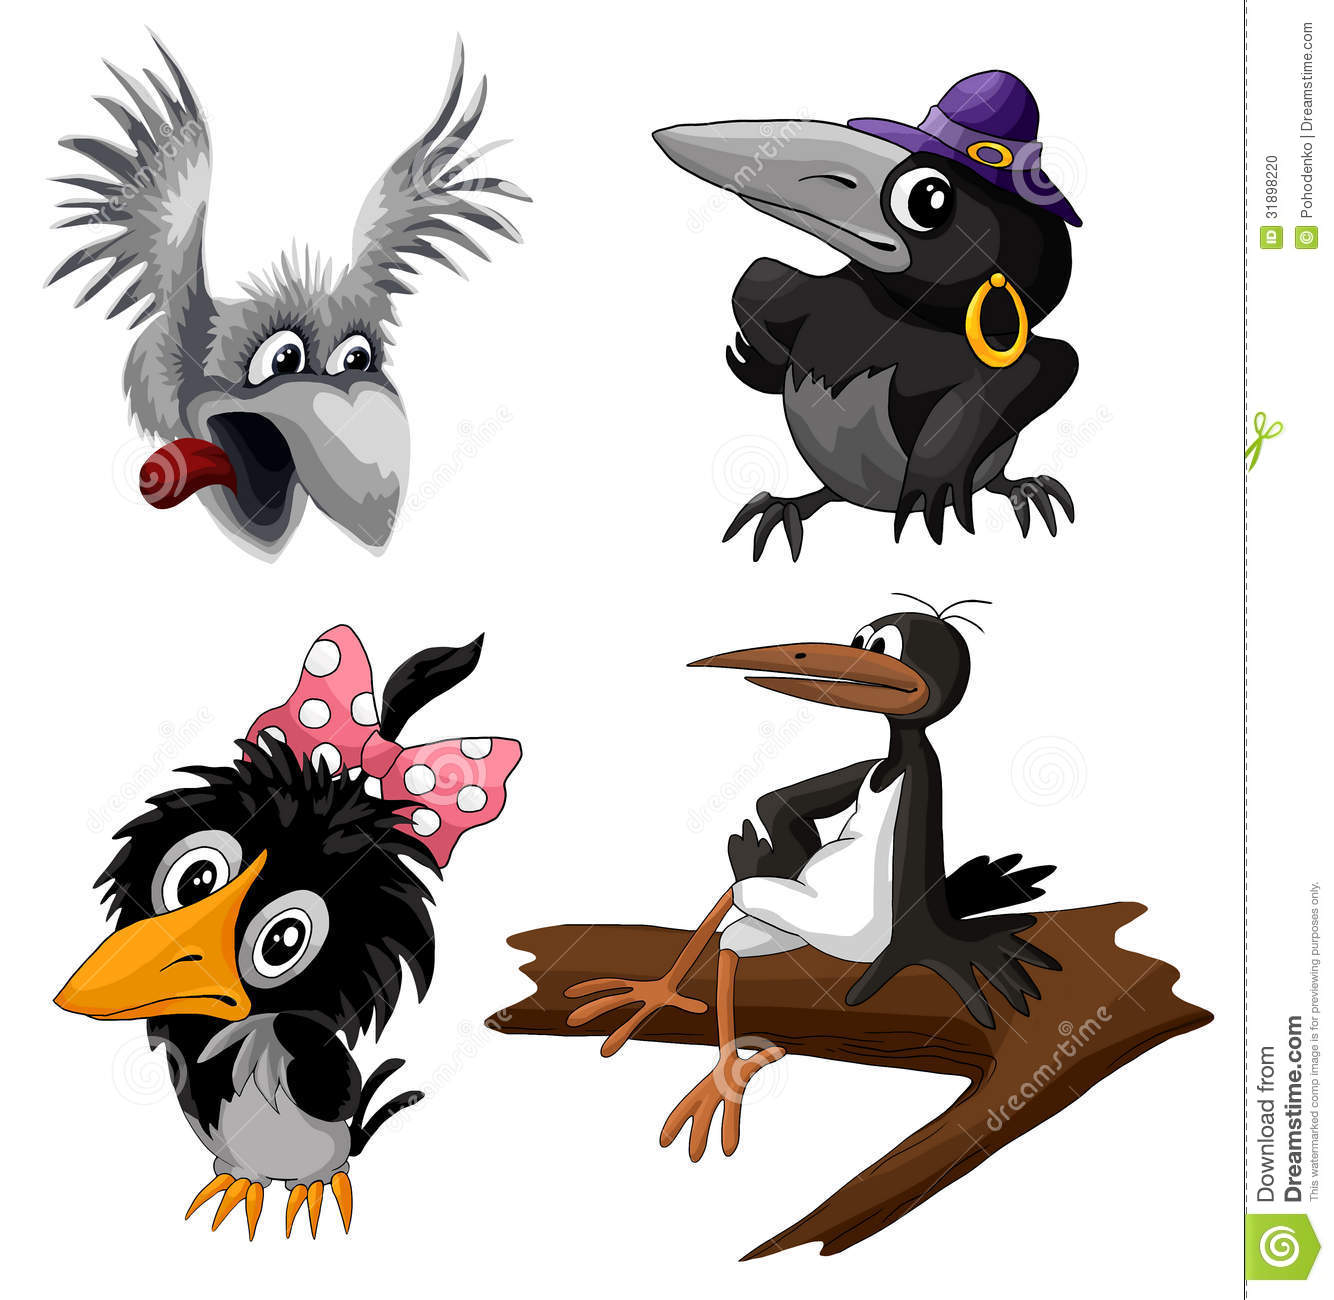 2 Crows Cartoon Characters : Bird crows stork clipart cartoon style illustration white